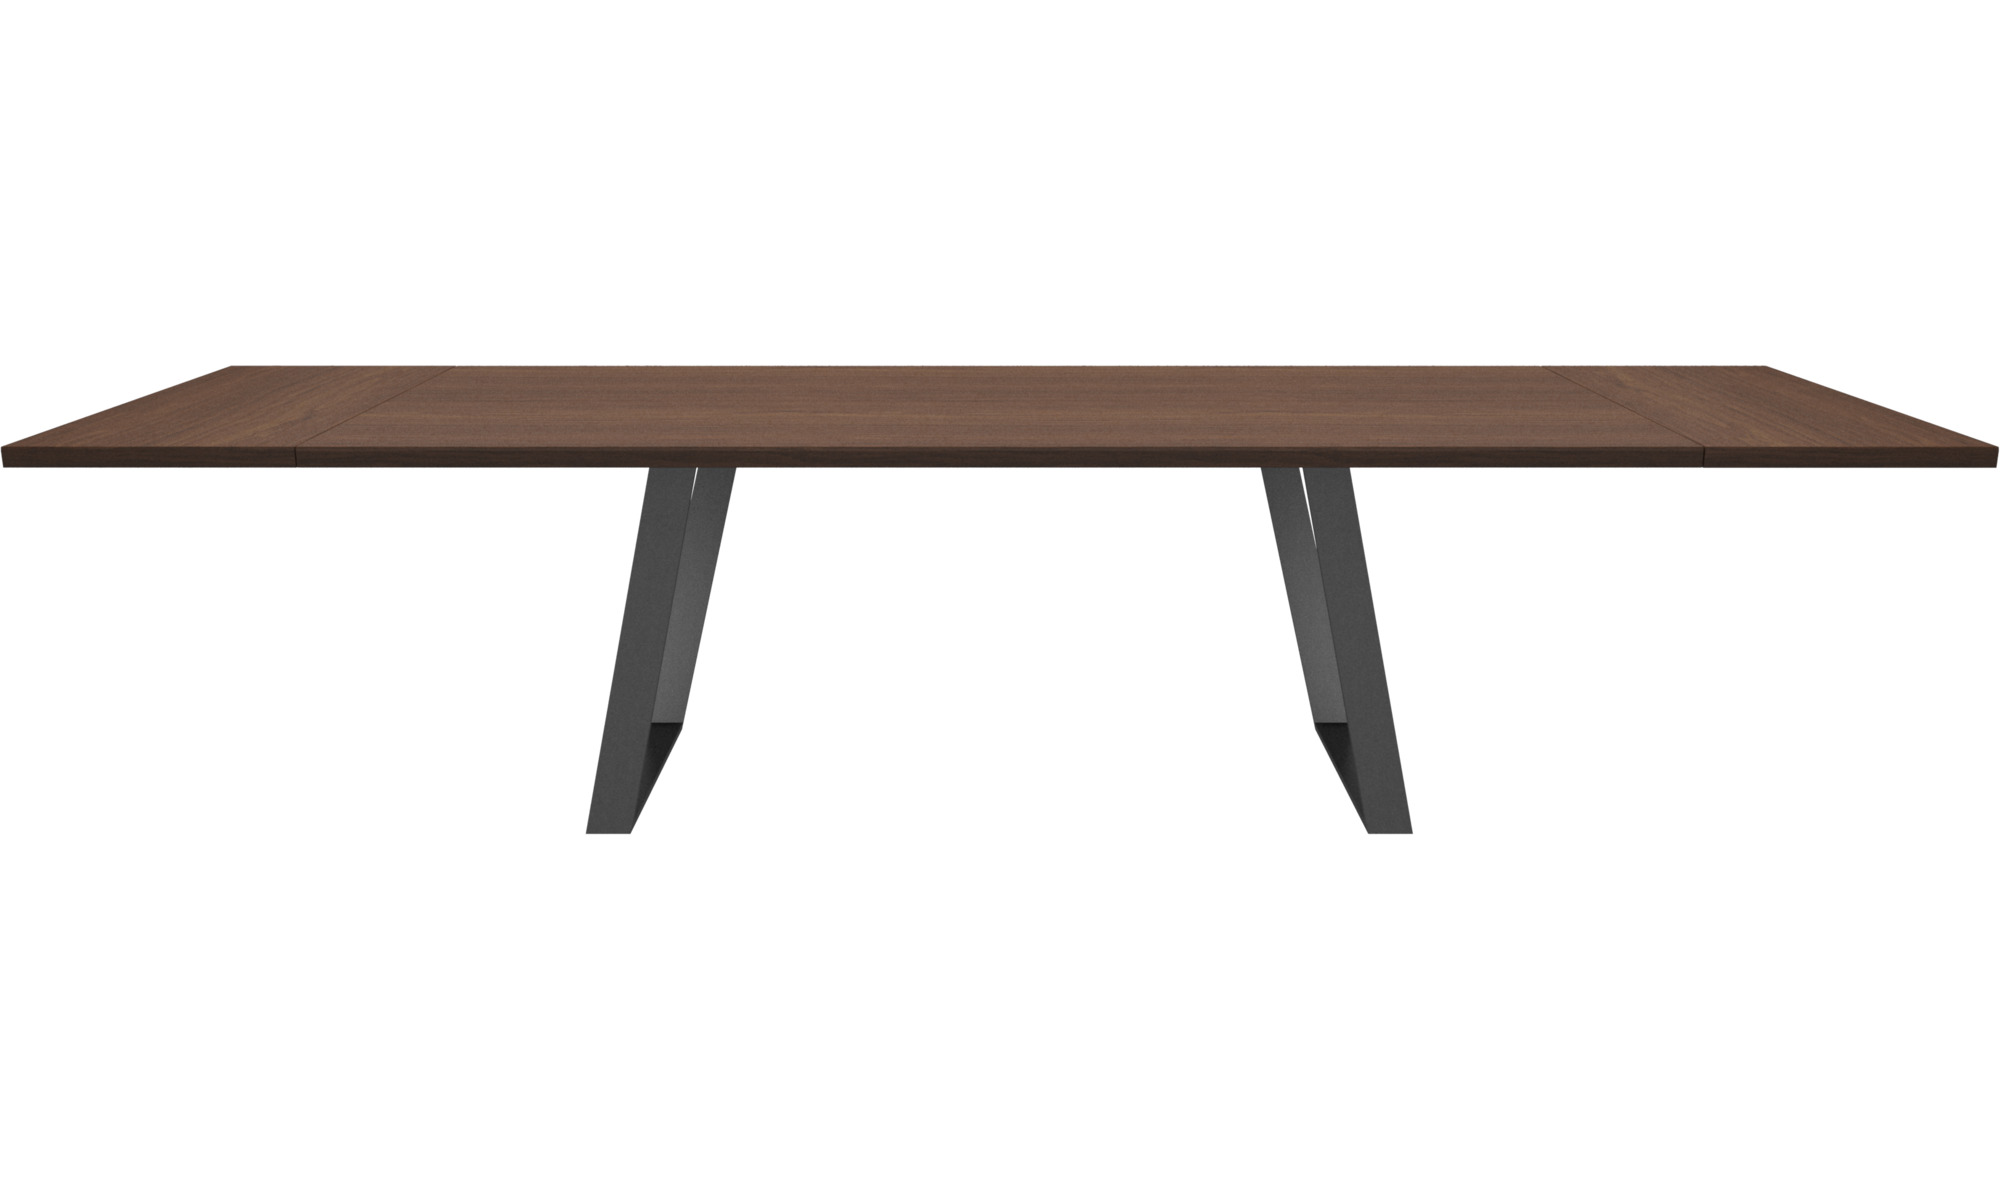 Dining tables - Vancouver table with supplementary tabletop